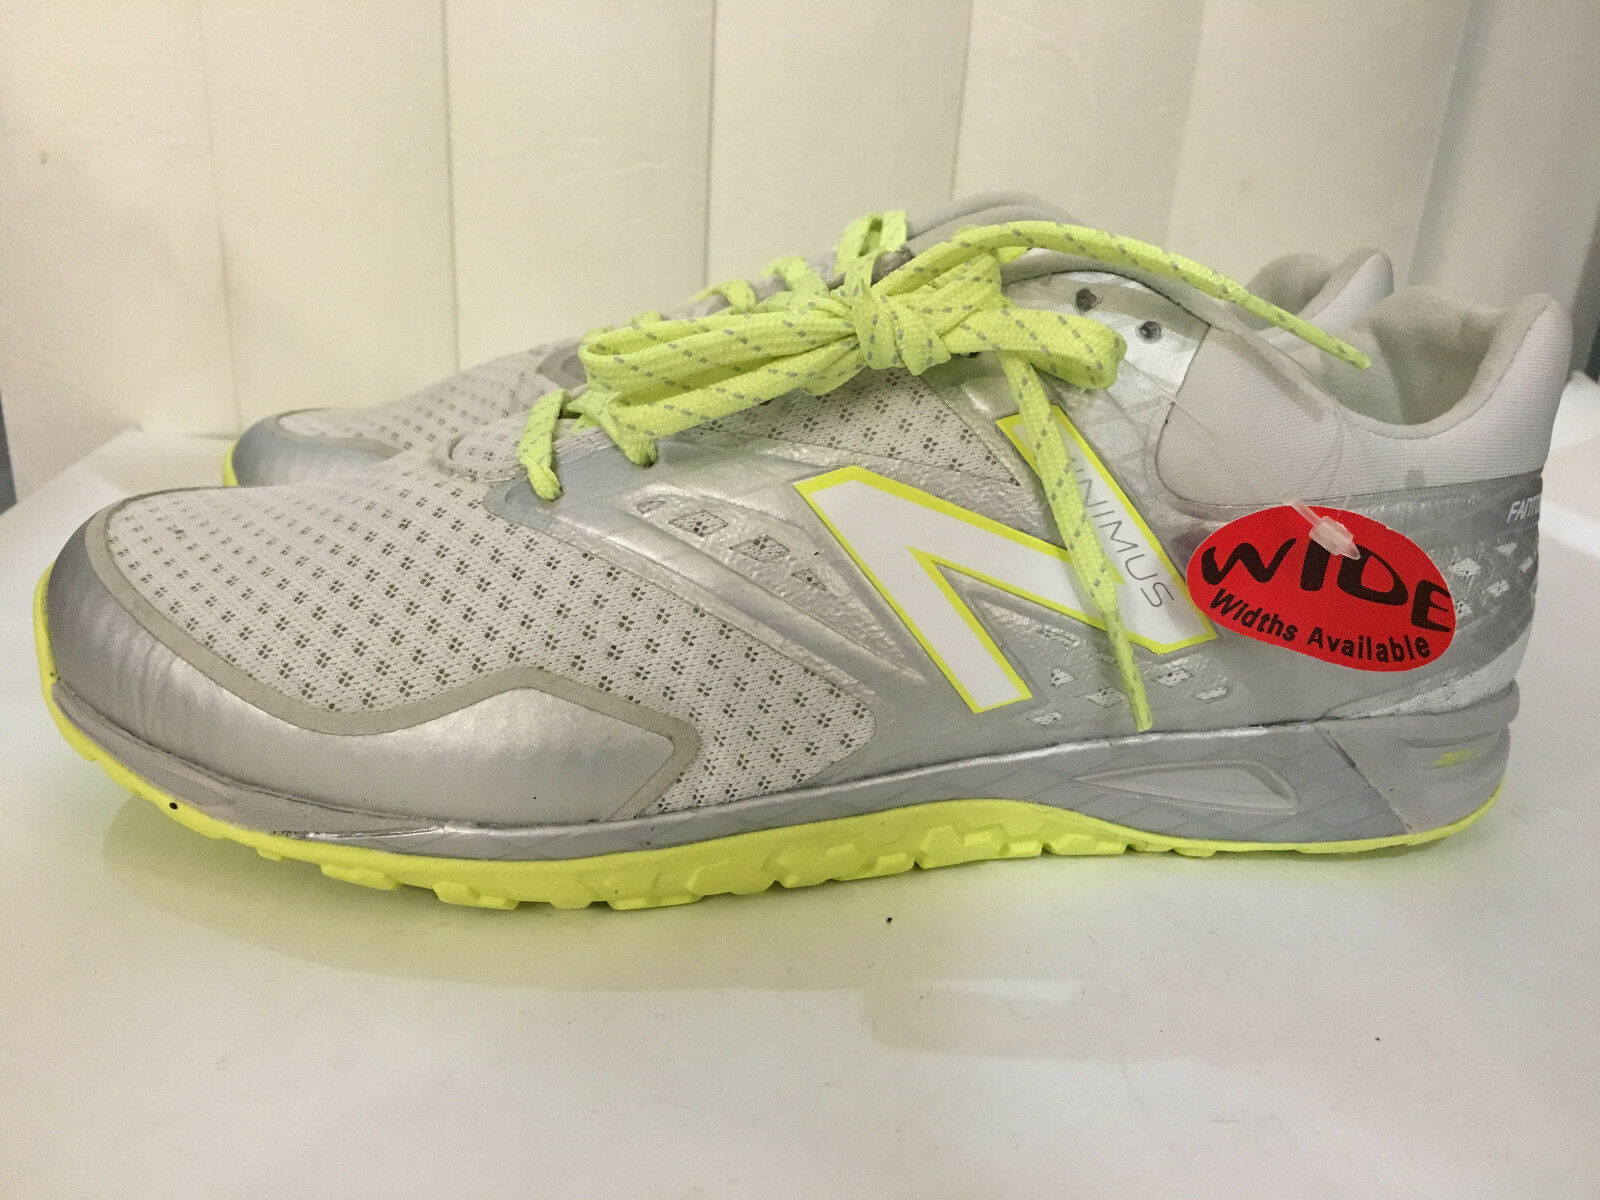 New Balance WX00GY WX00GY WX00GY Women's  White Yellow shoes Size 5.5-10 D (Wide) 31cbae